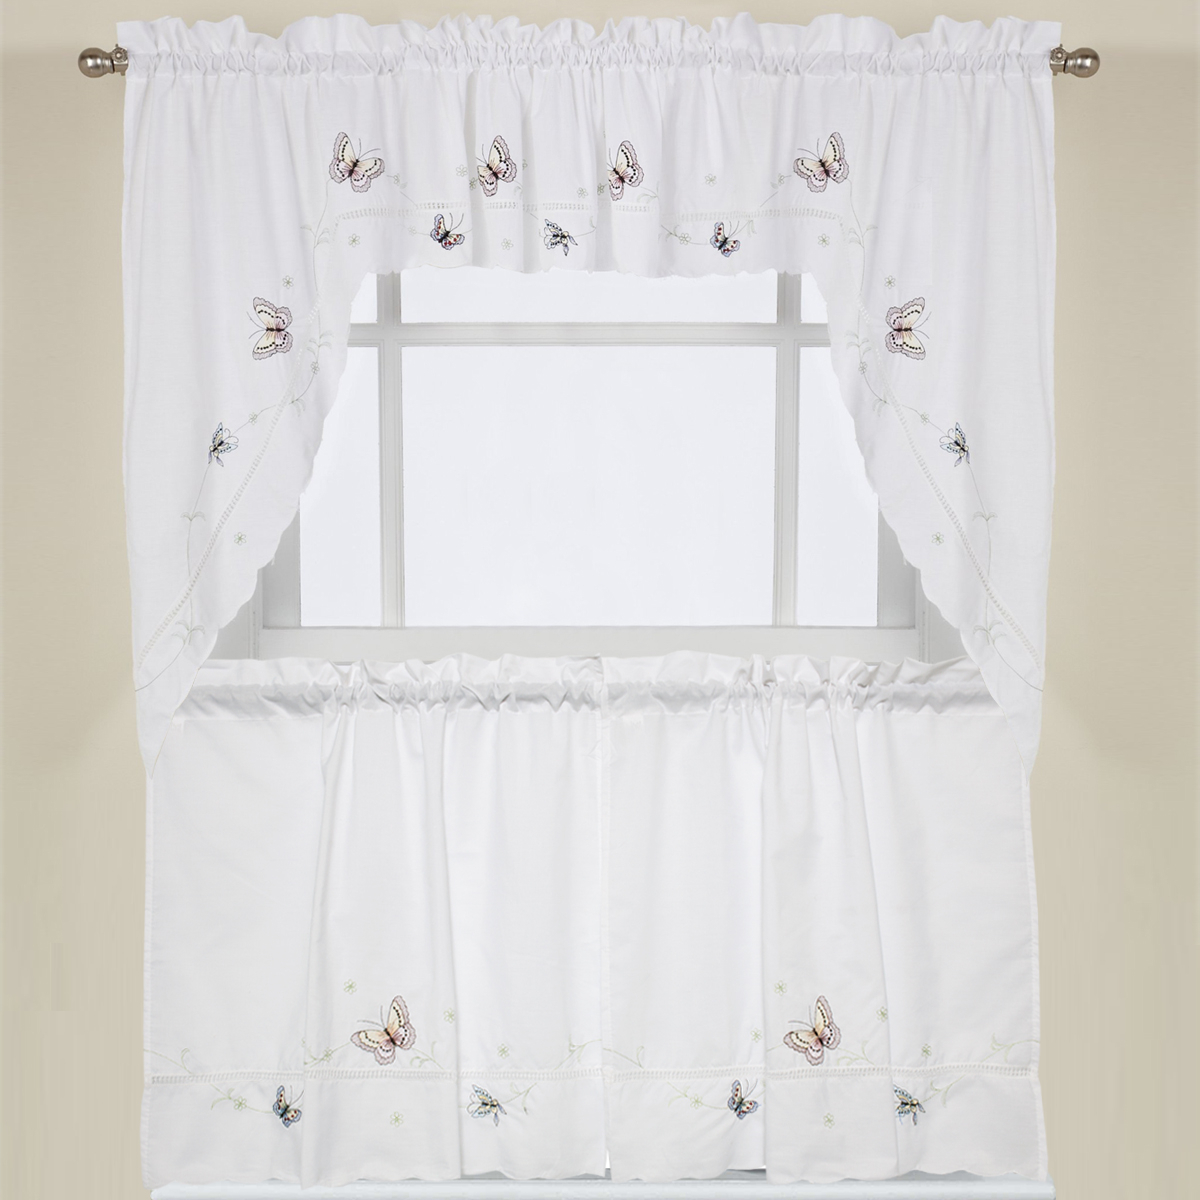 "Details About Monarch Butterfly White Kitchen Curtain Embroidered 24"" Tier, Swag & Valance Set Within Widely Used Urban Embroidered Tier And Valance Kitchen Curtain Tier Sets (View 18 of 20)"